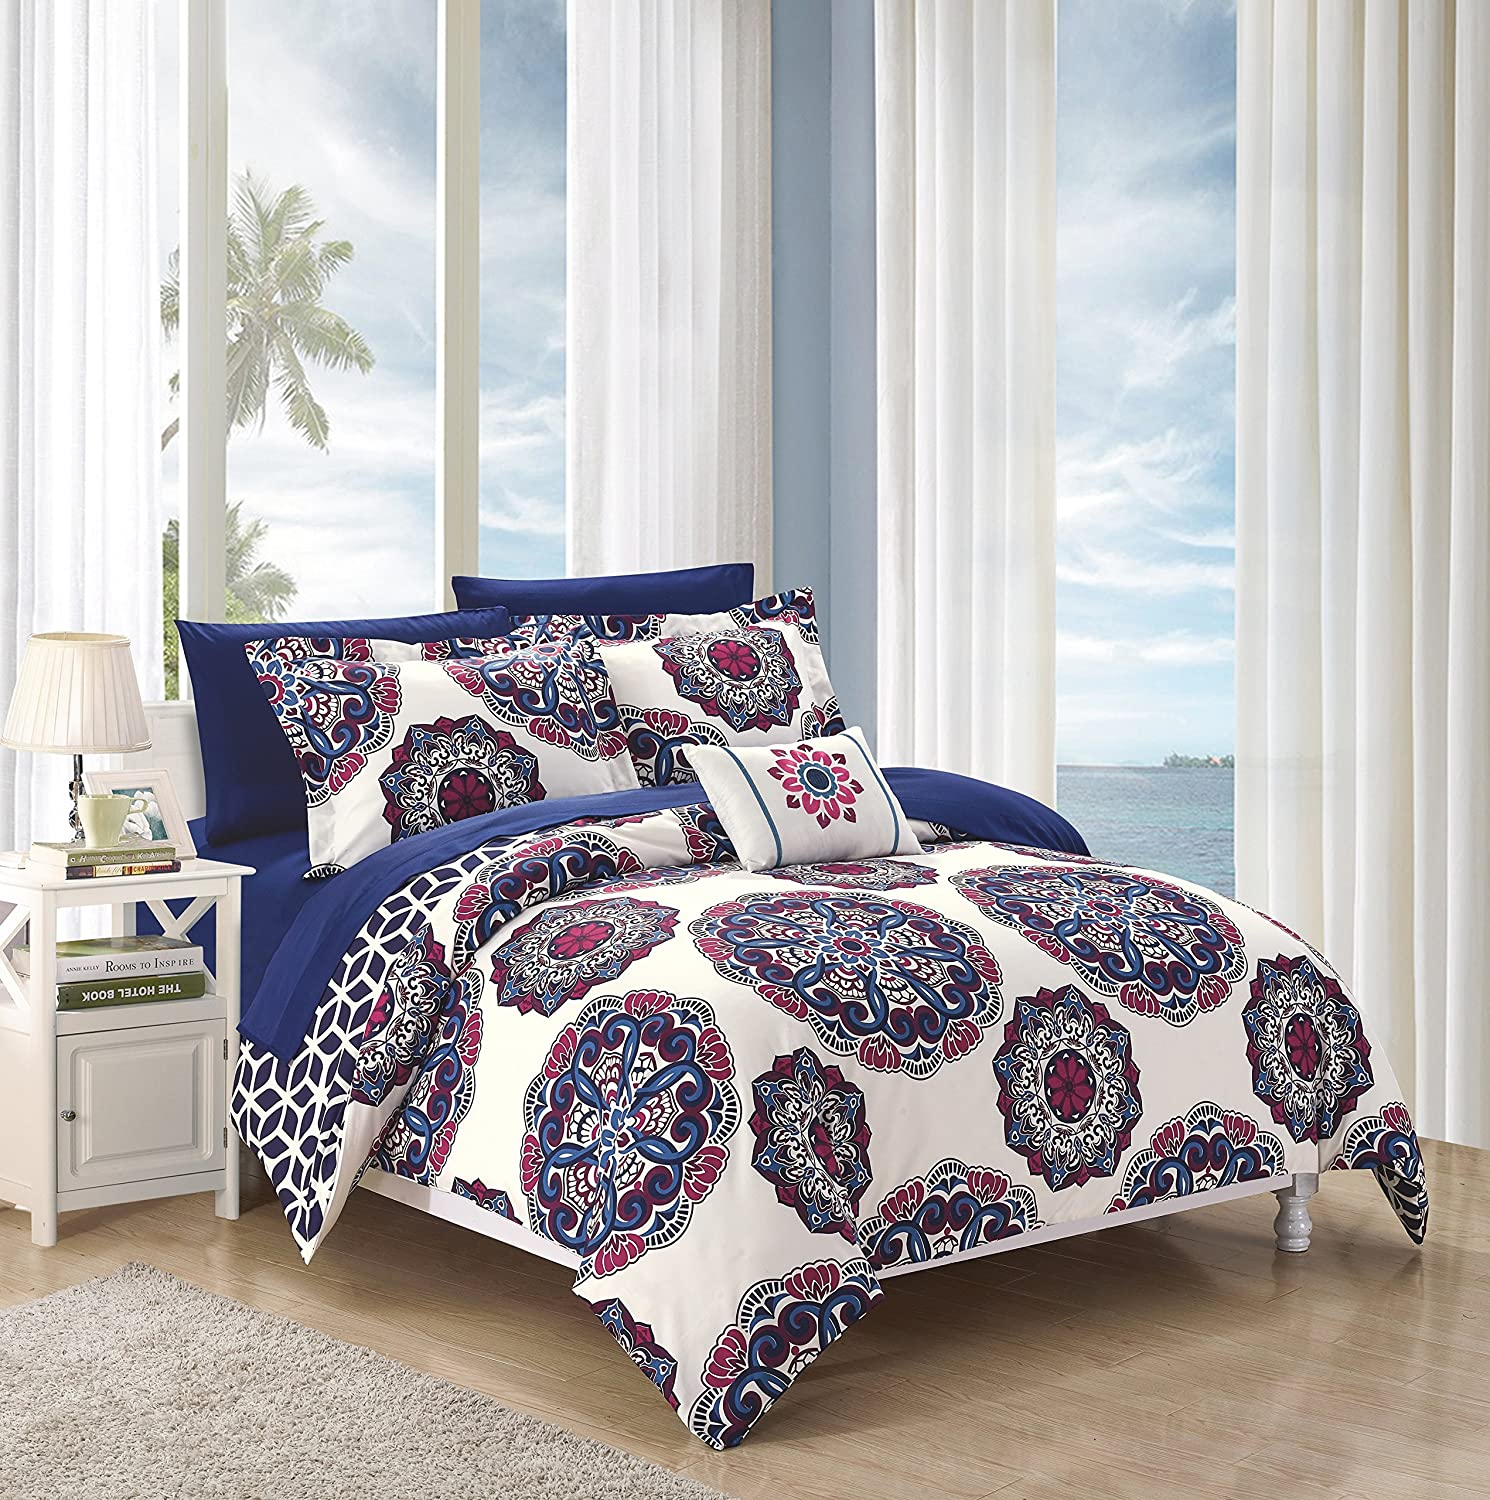 Chic Home 8 Piece Barcelona Super Soft microfiberREVERSIBLE Full/Queen Bed In a Bag Comforter Set Navy